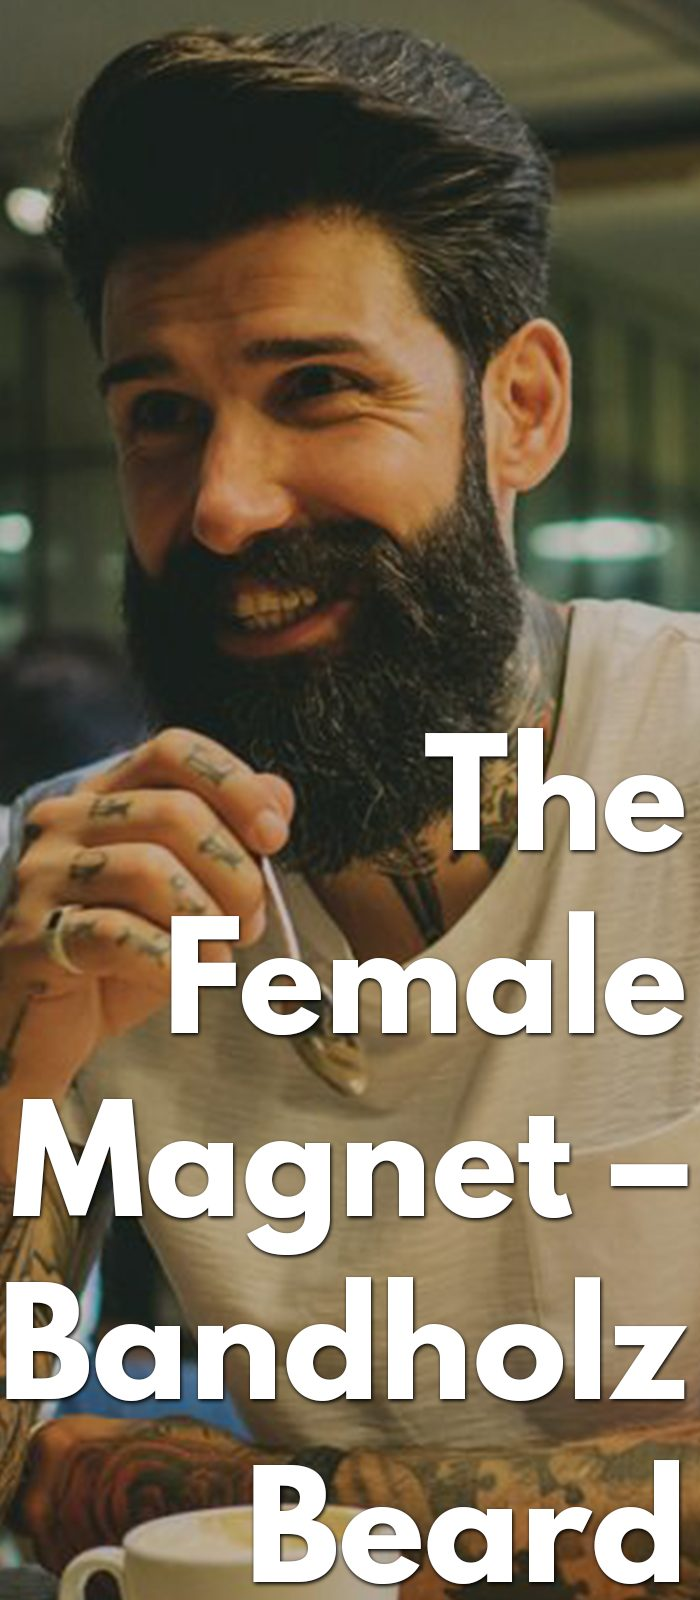 The-Female-Magnet-–-Bandholz-Beard